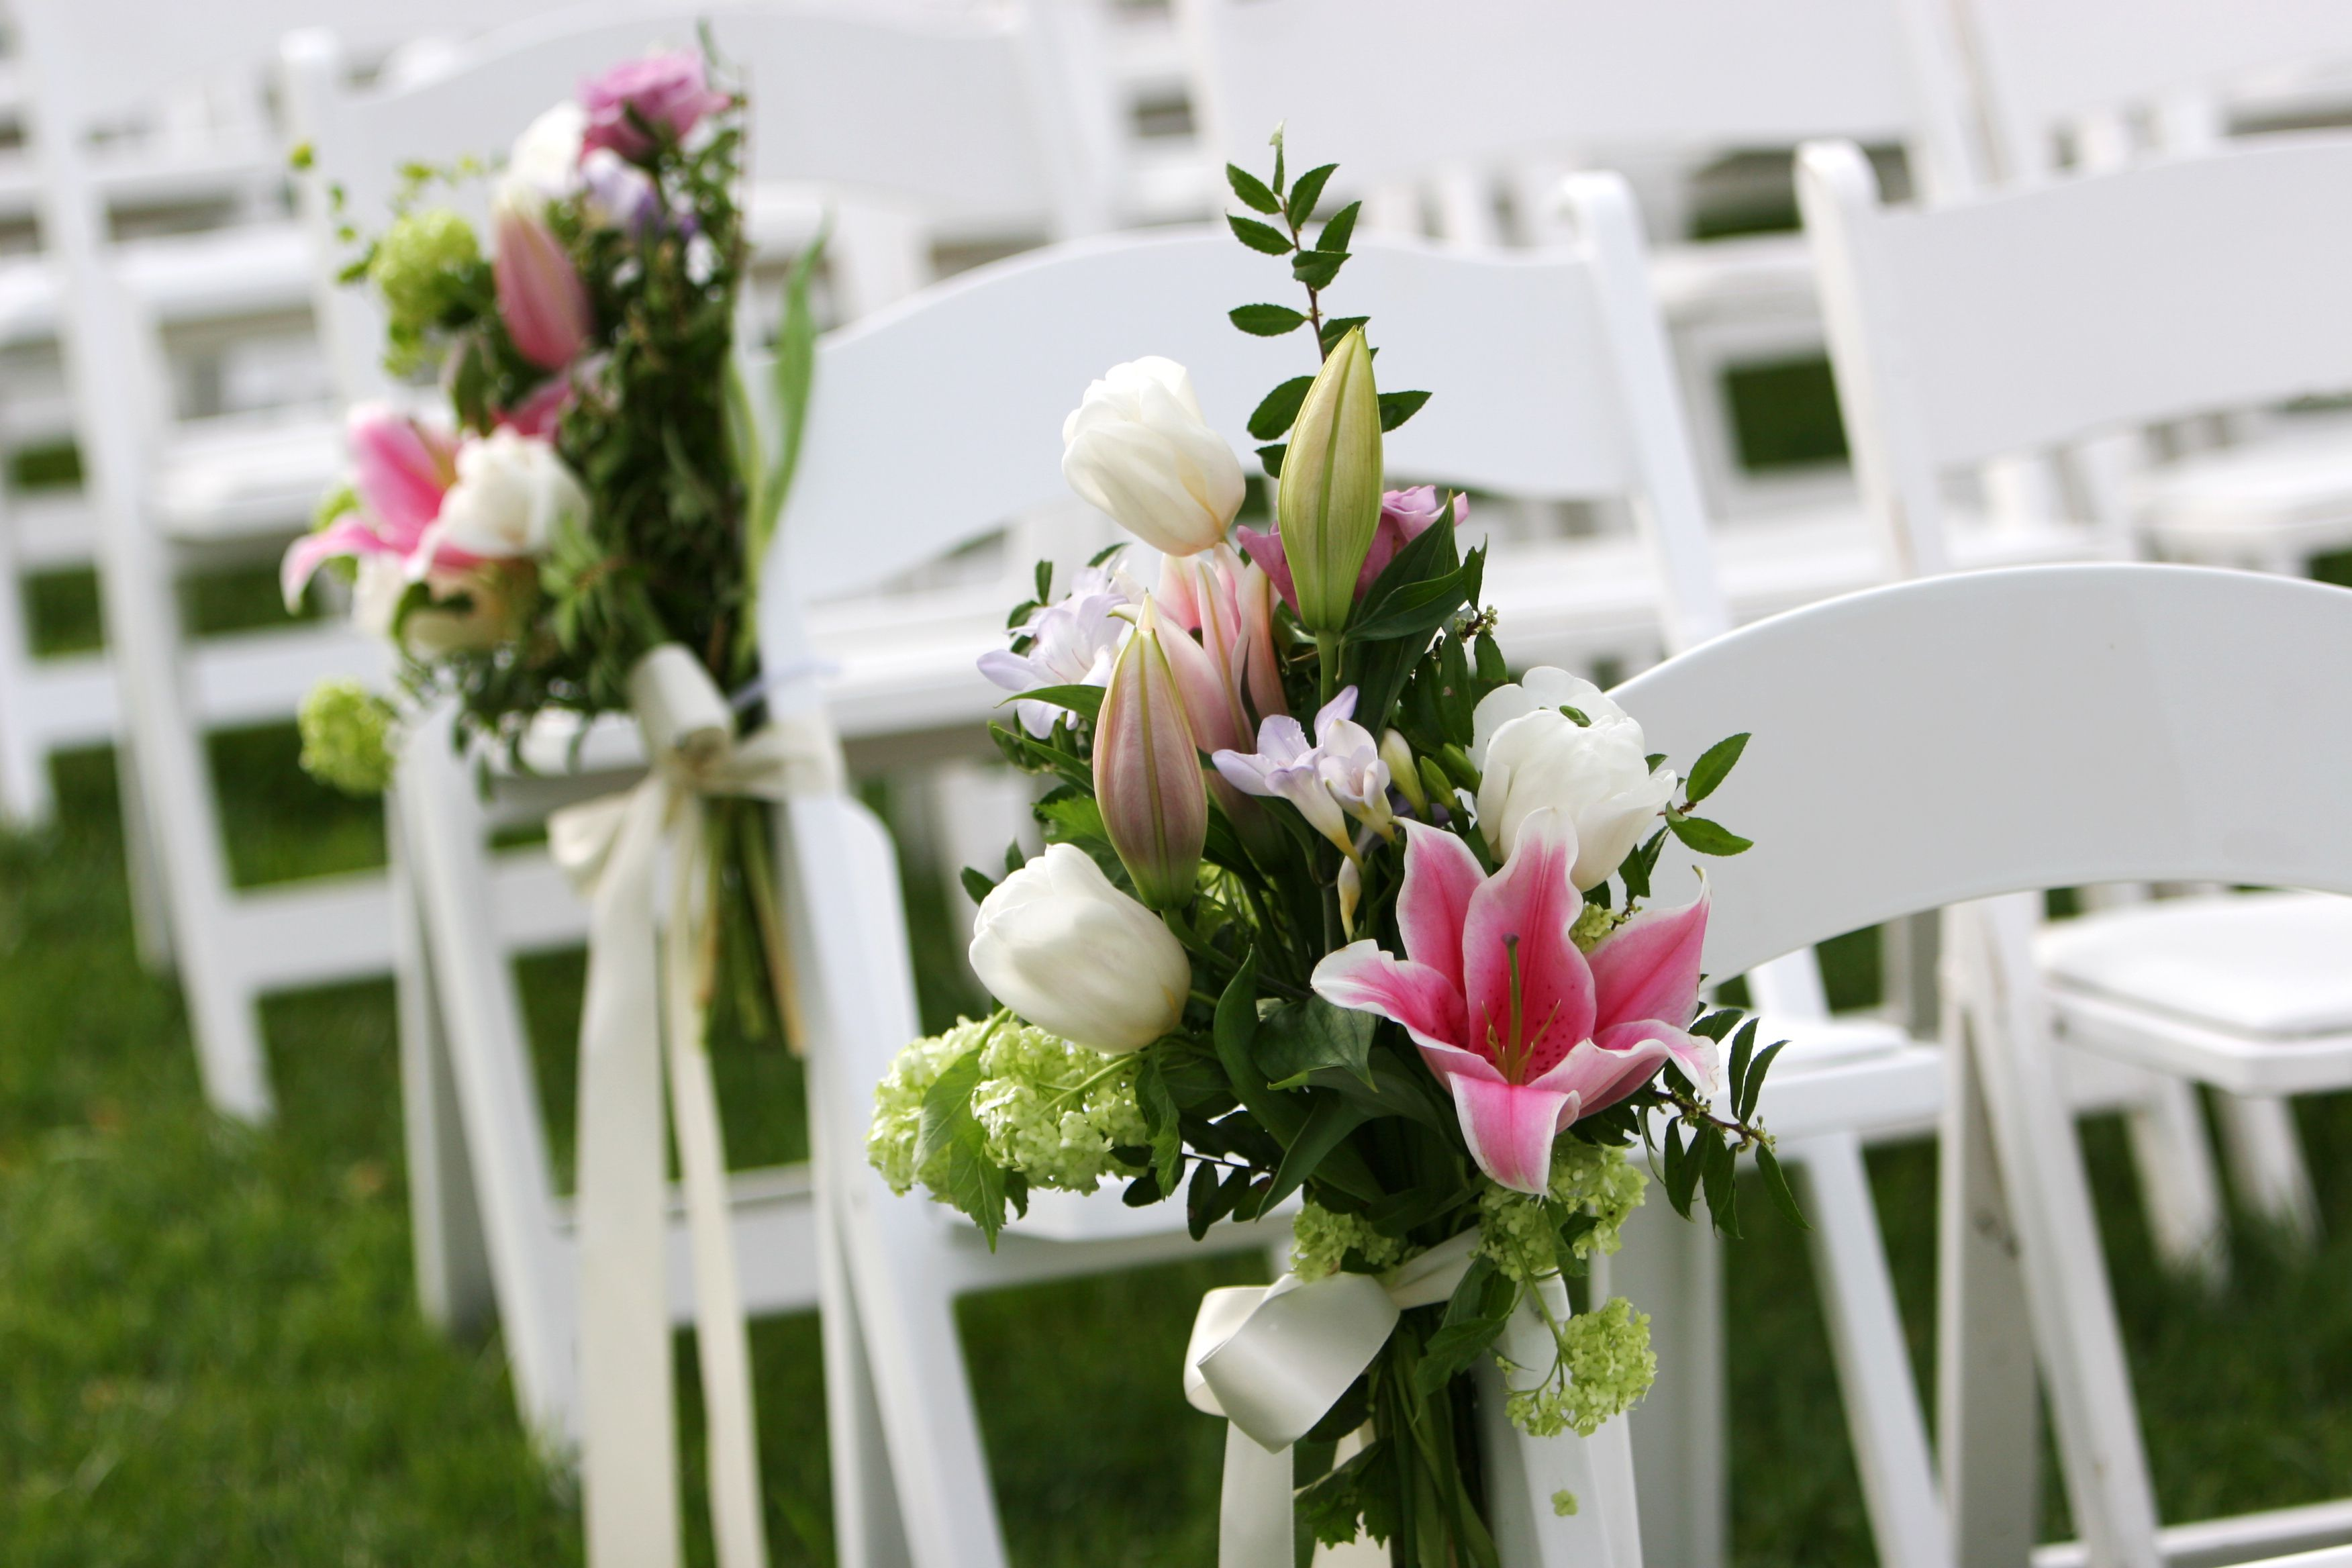 Vintage wedding flowers ideas and suggestions hardy wedding flowers for outdoor venues junglespirit Image collections